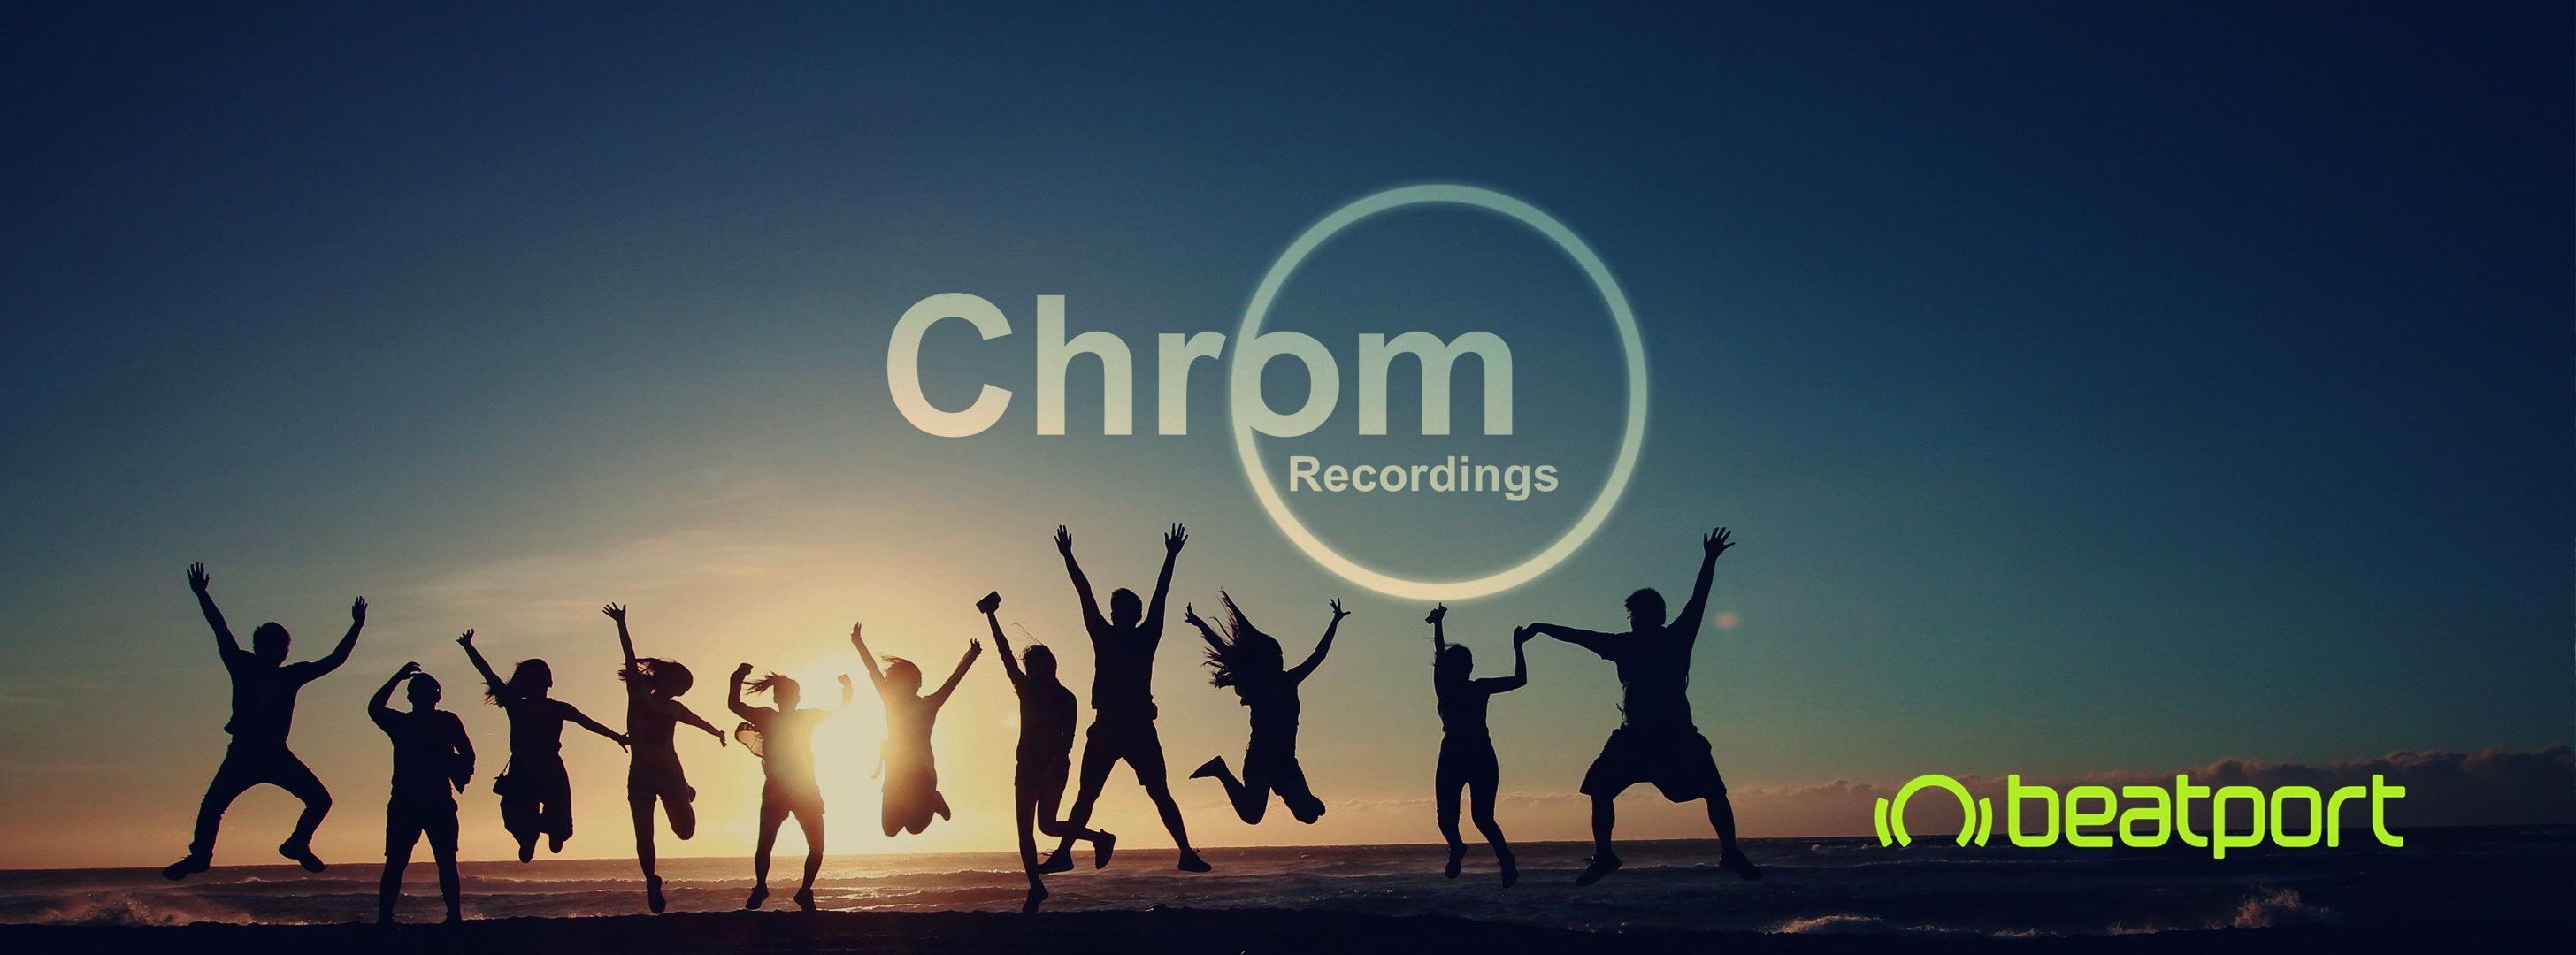 Chrom Recordings Beatport